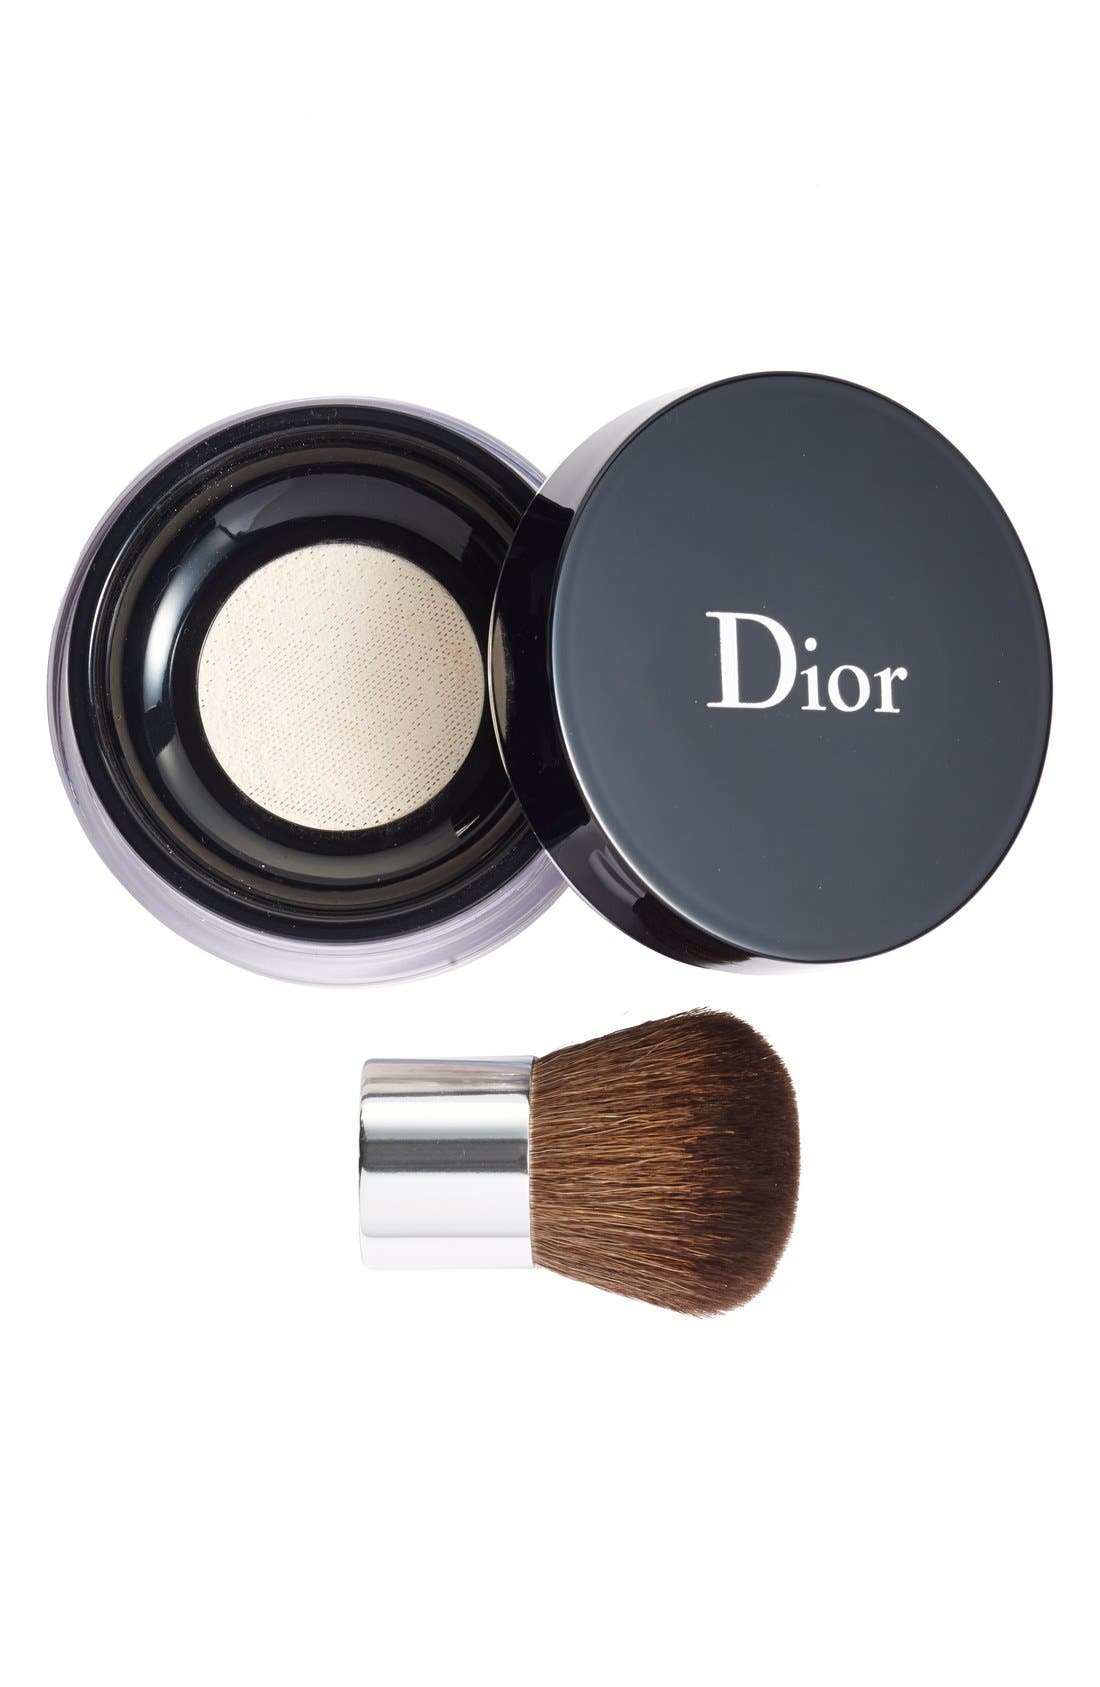 Dior Diorskin Forever & Ever Control Extreme Perfection Matte Finish Invisible Loose Setting Powder -